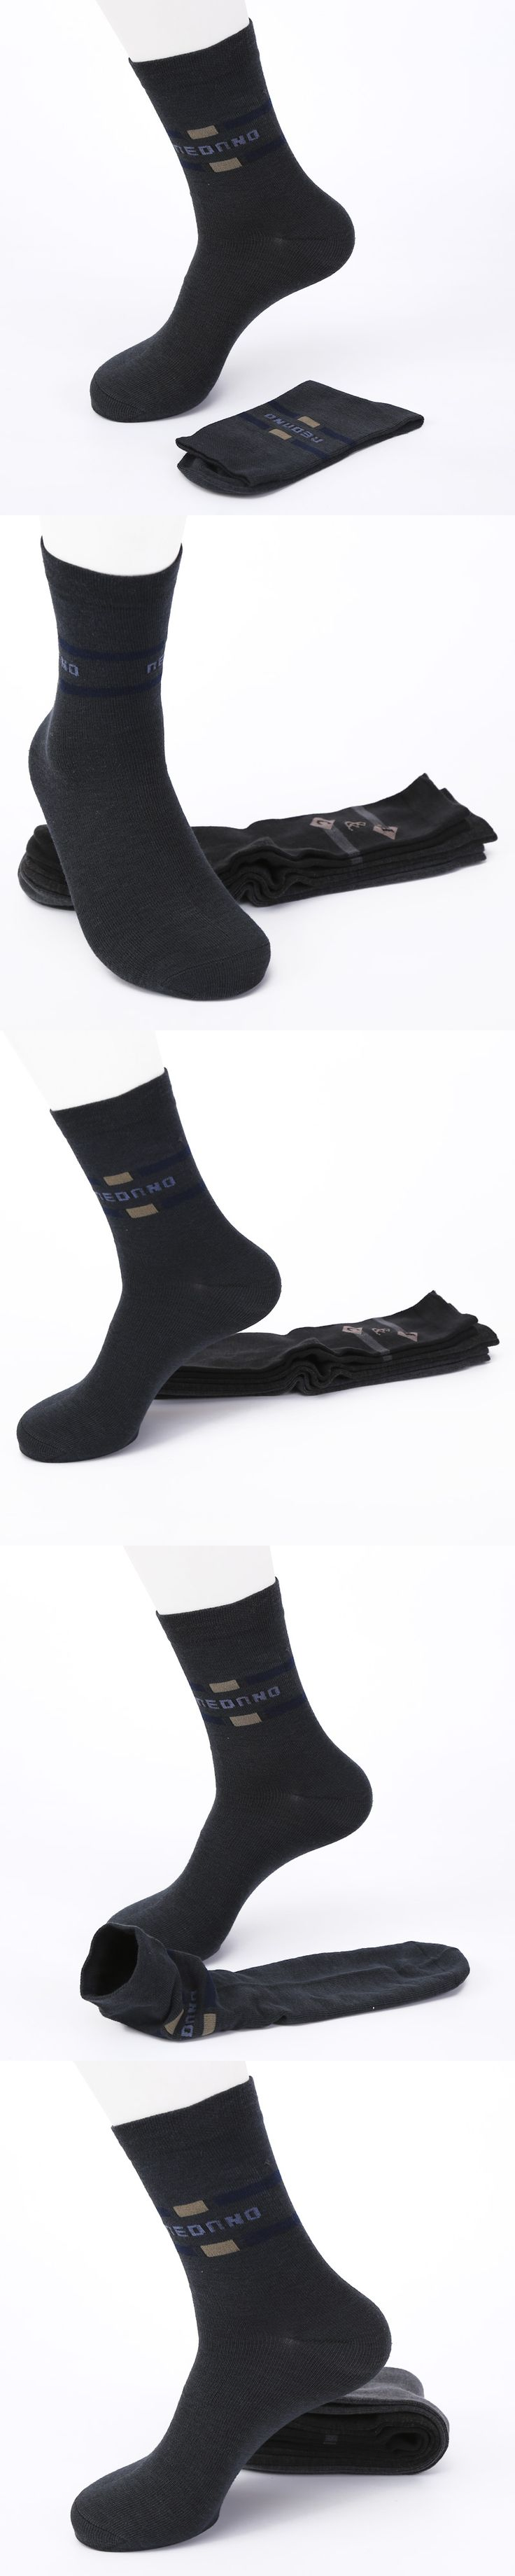 Mens Business Socks High Quality Simple Styles Casual with Hot Sale Long Socks For Men #011